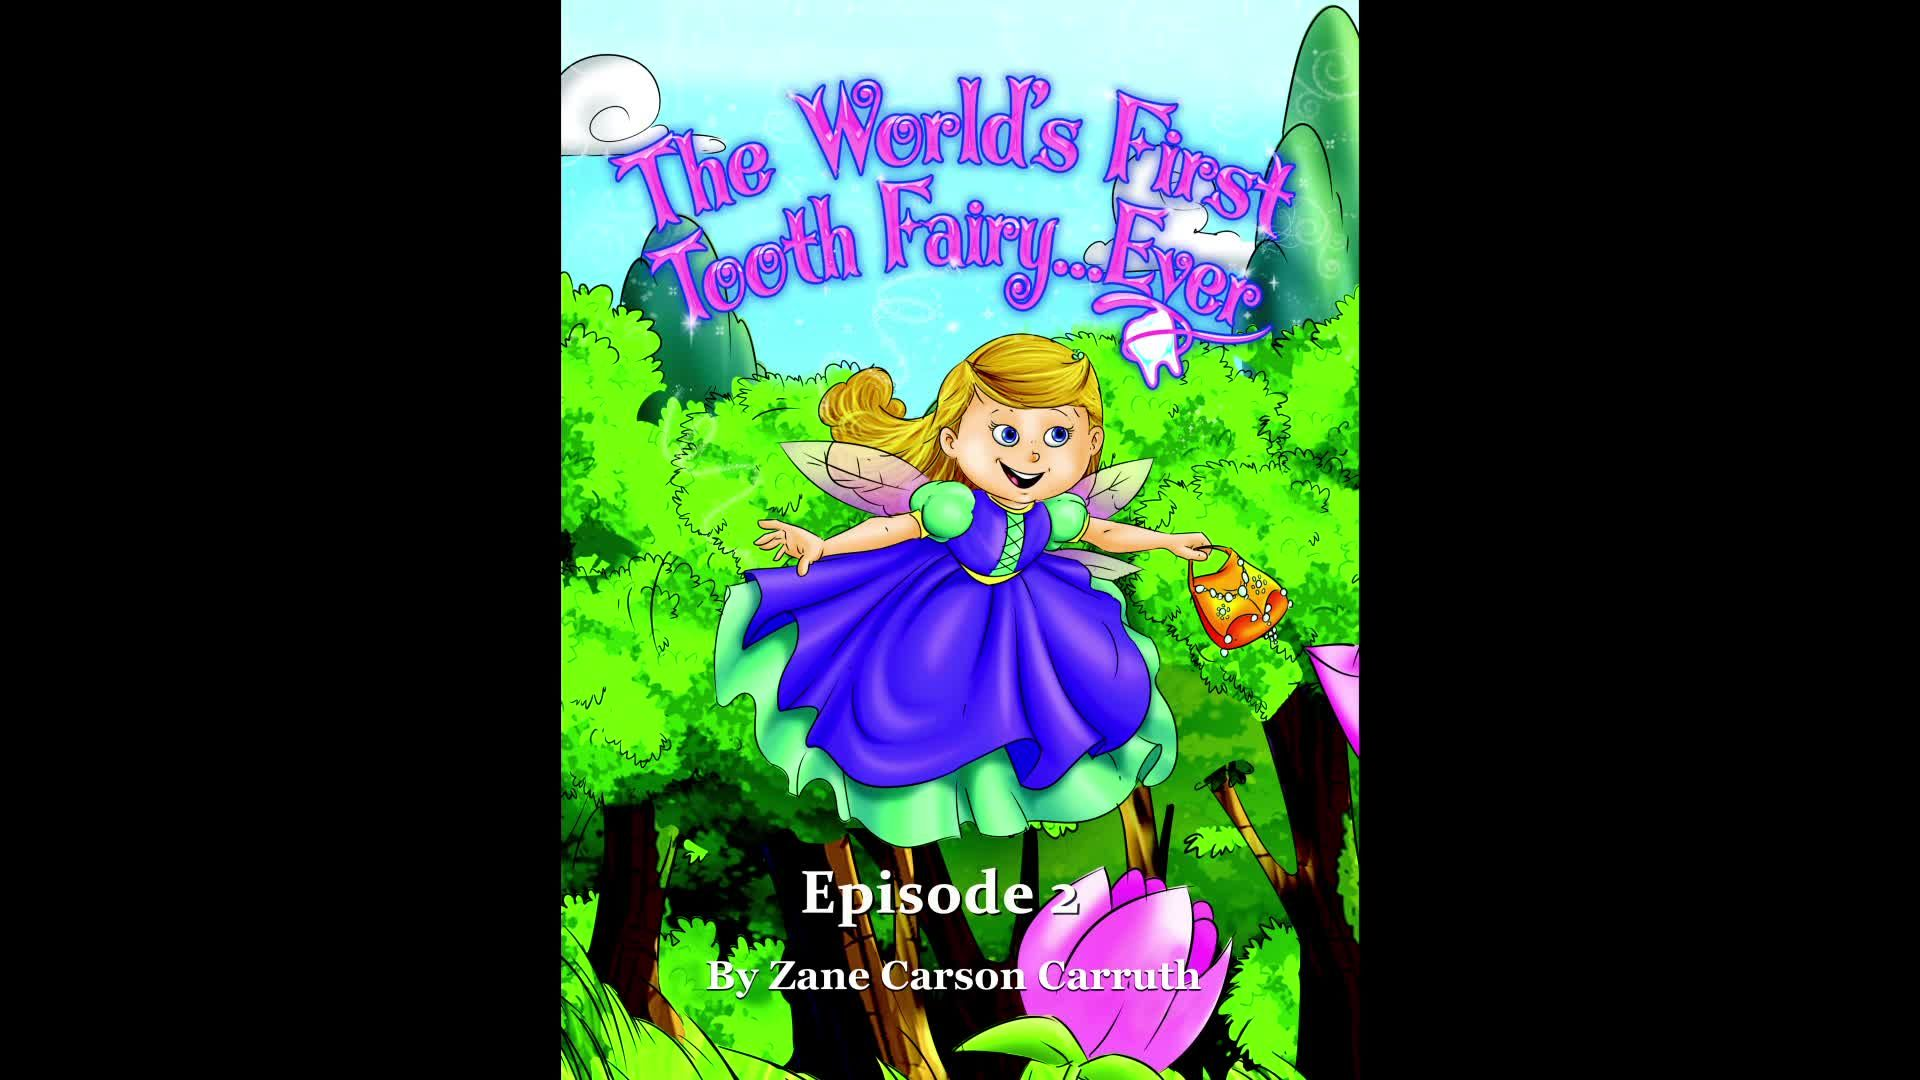 First Tooth Fairy Episode 2